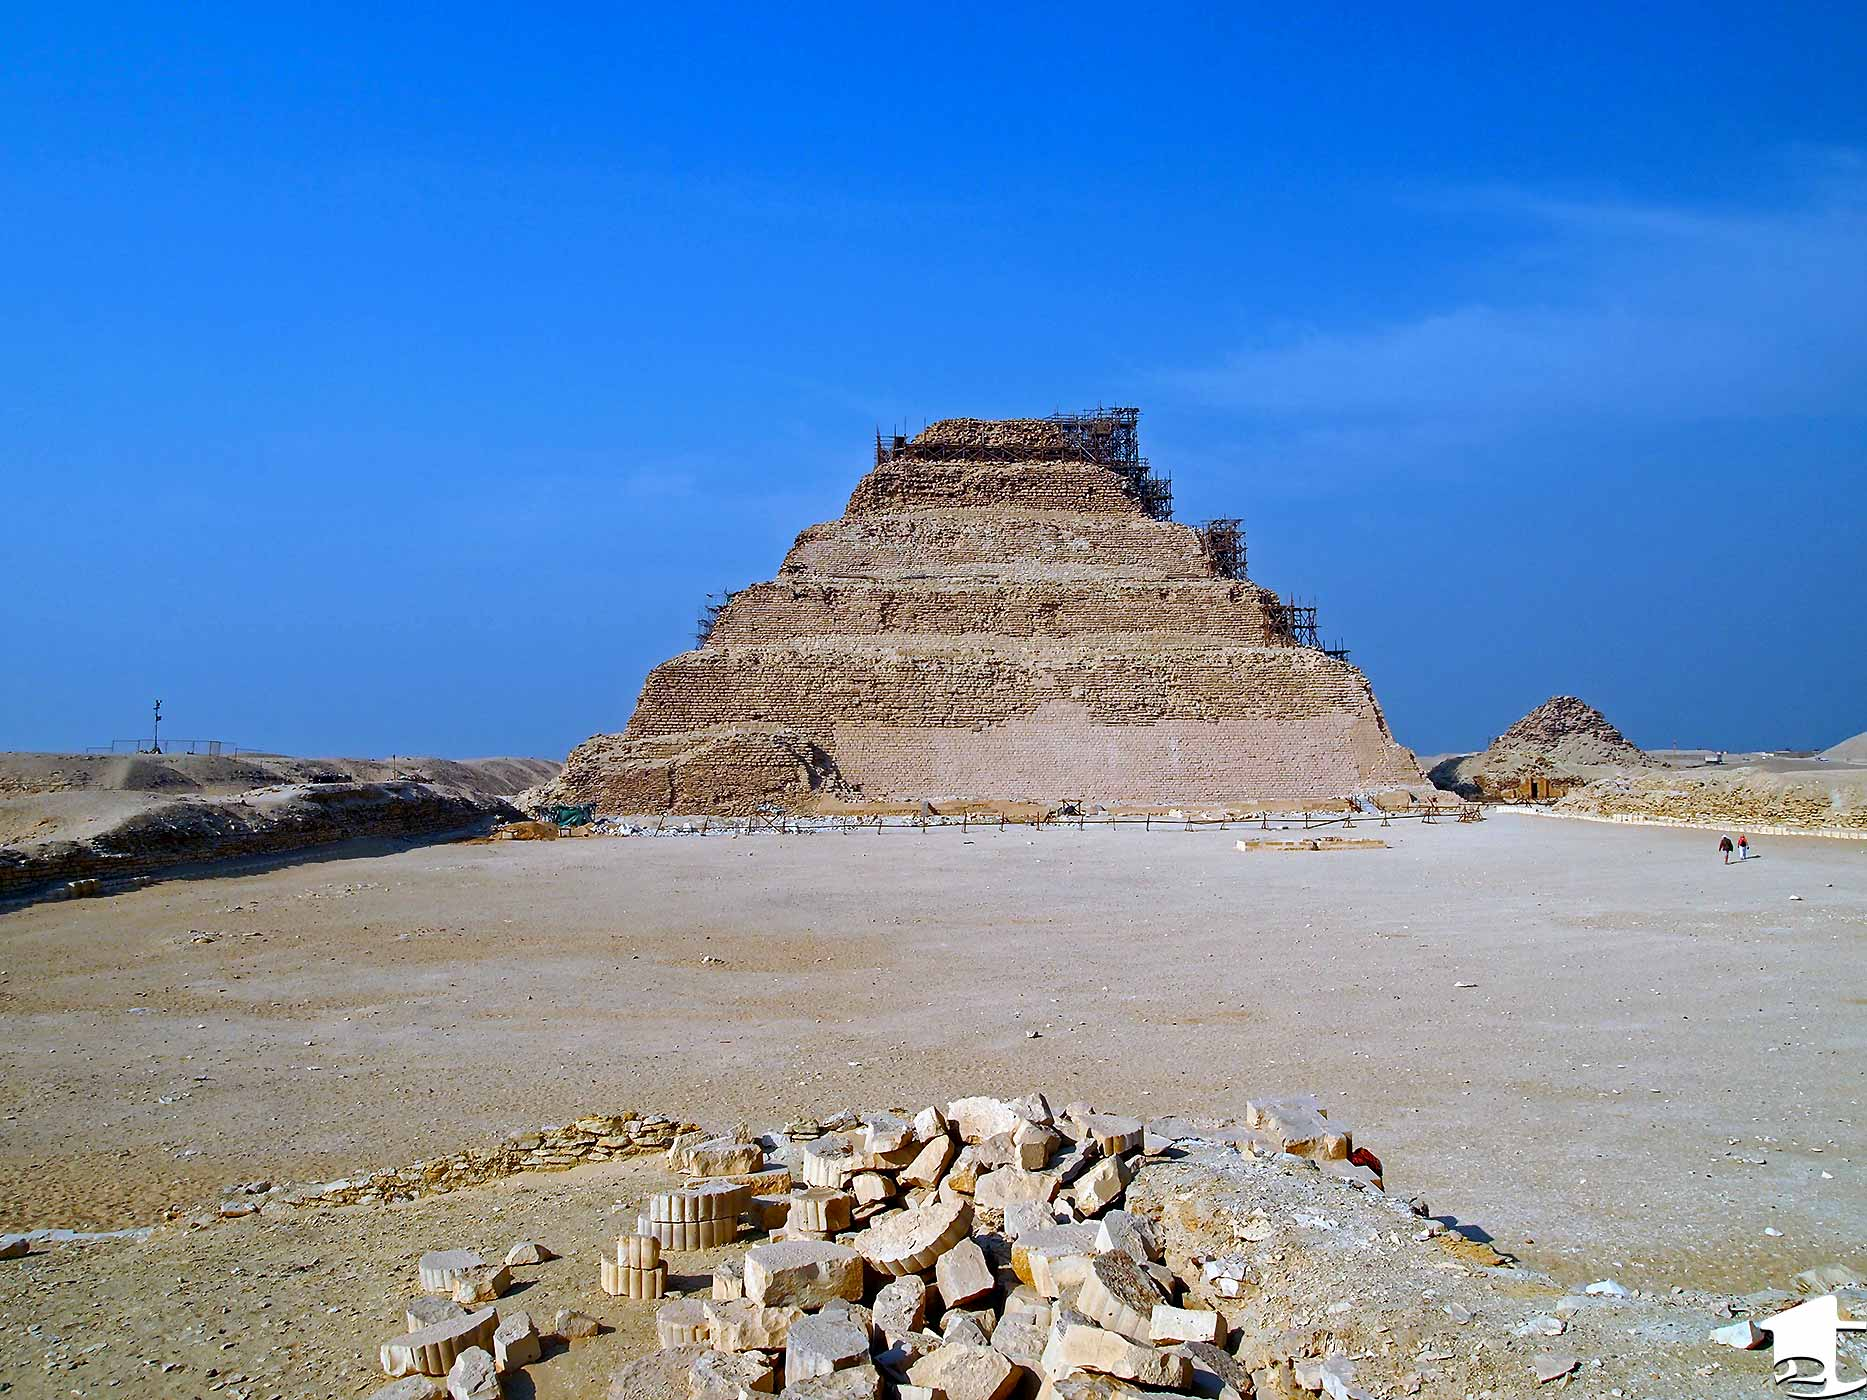 The Step Pyramid, the first pyramid built by the ancient Egyptians.